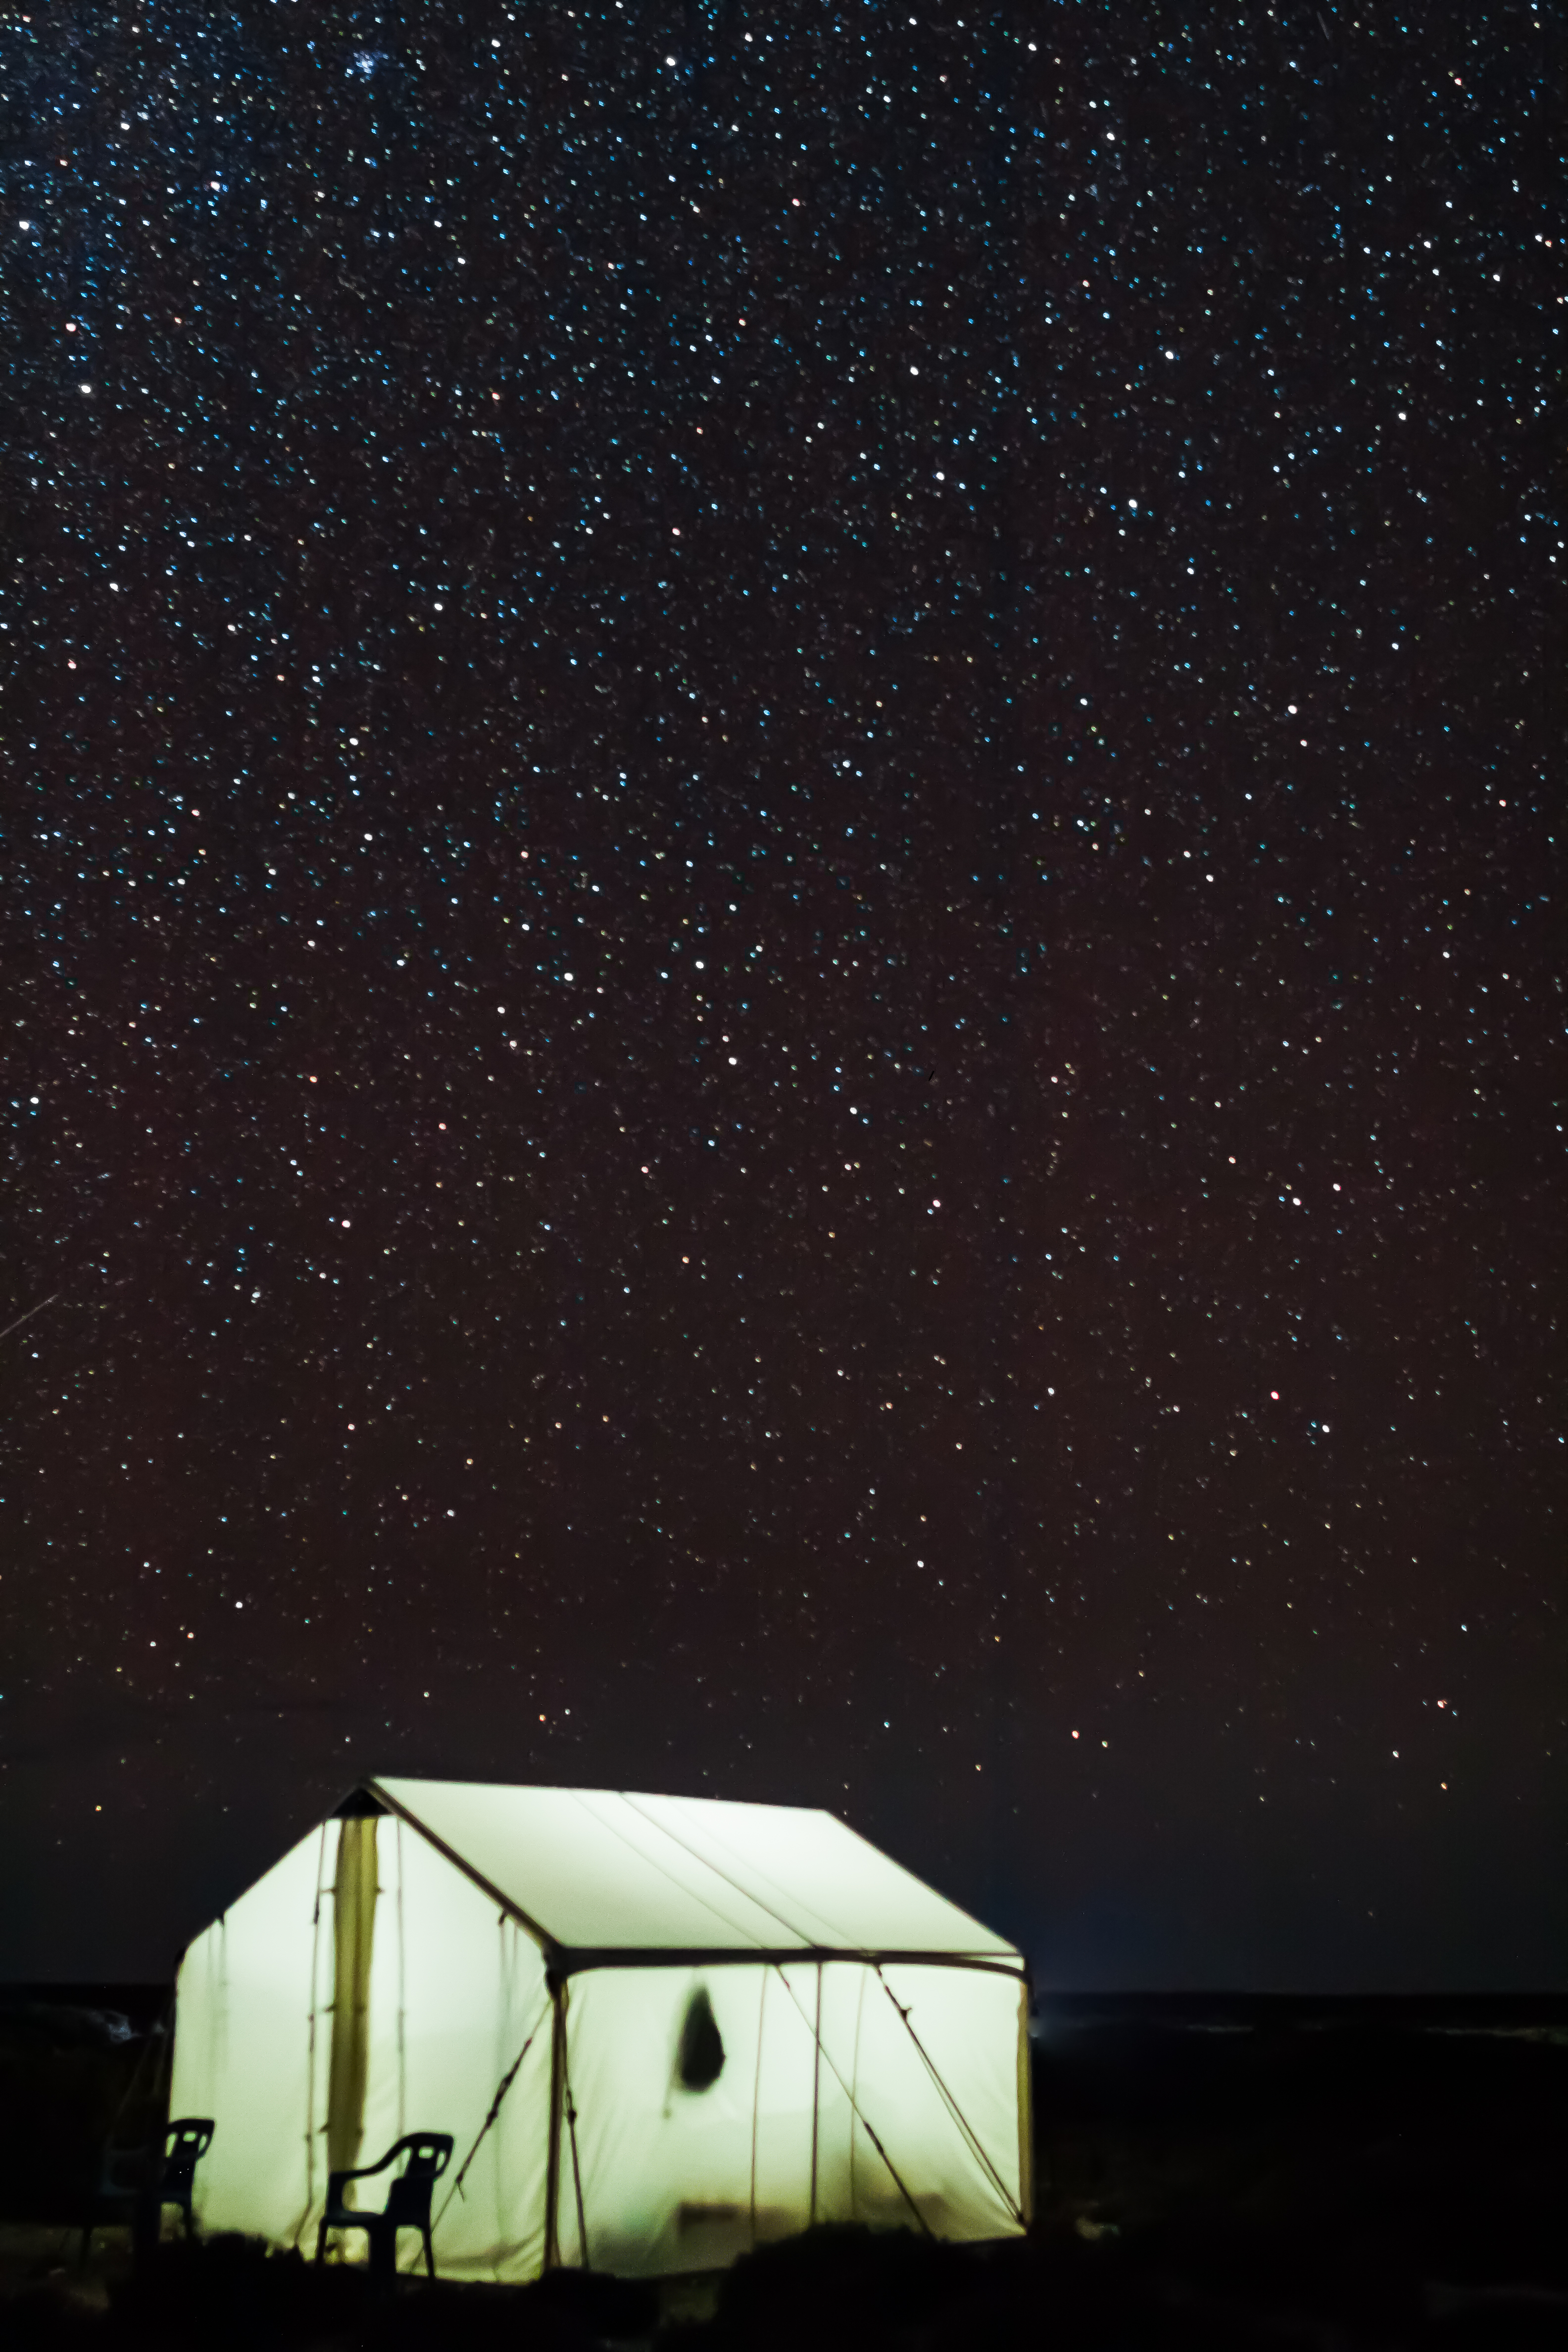 Illuminated tent at night with stars above